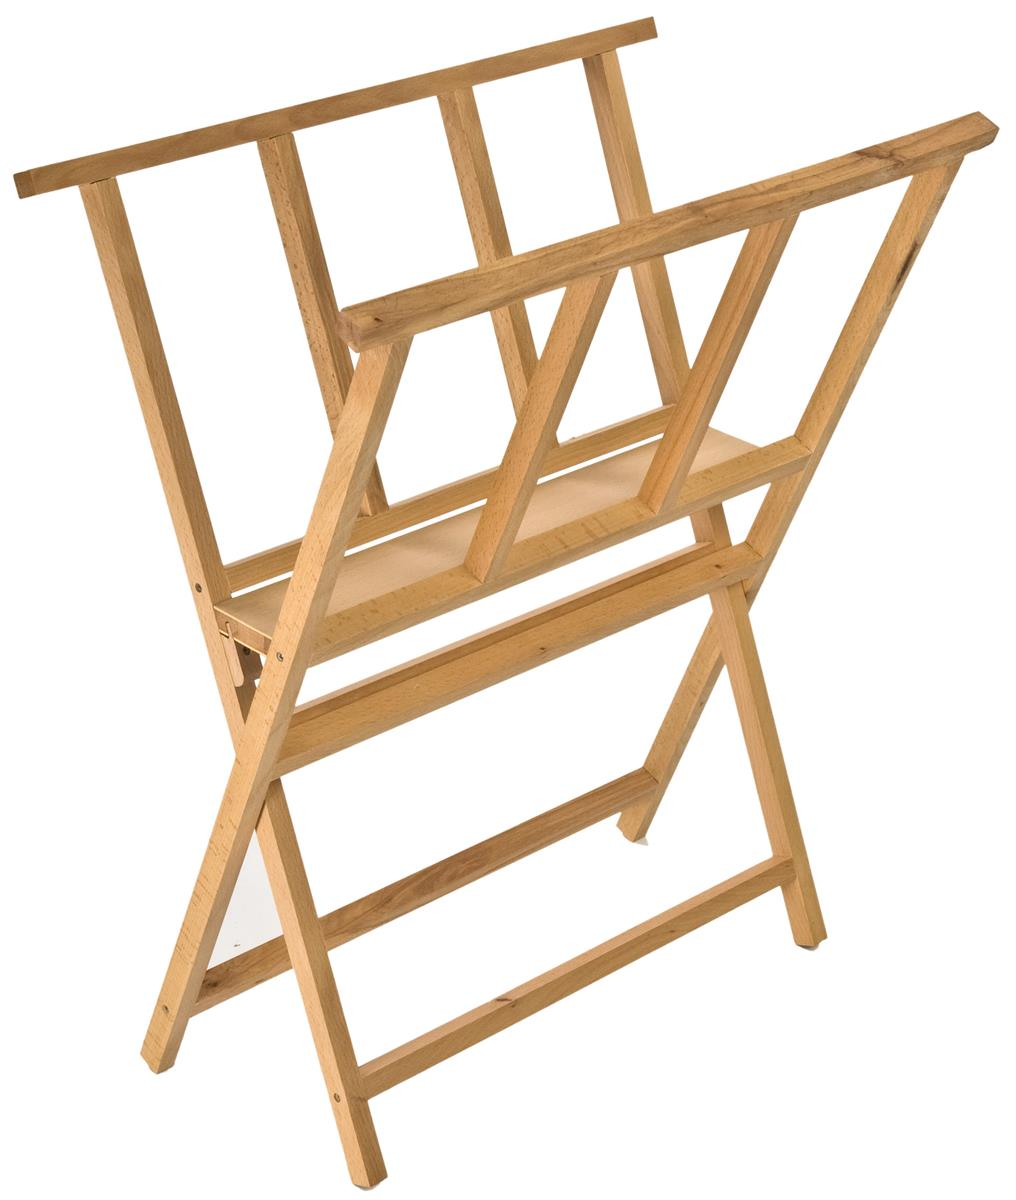 art print rack folds for storage and transport